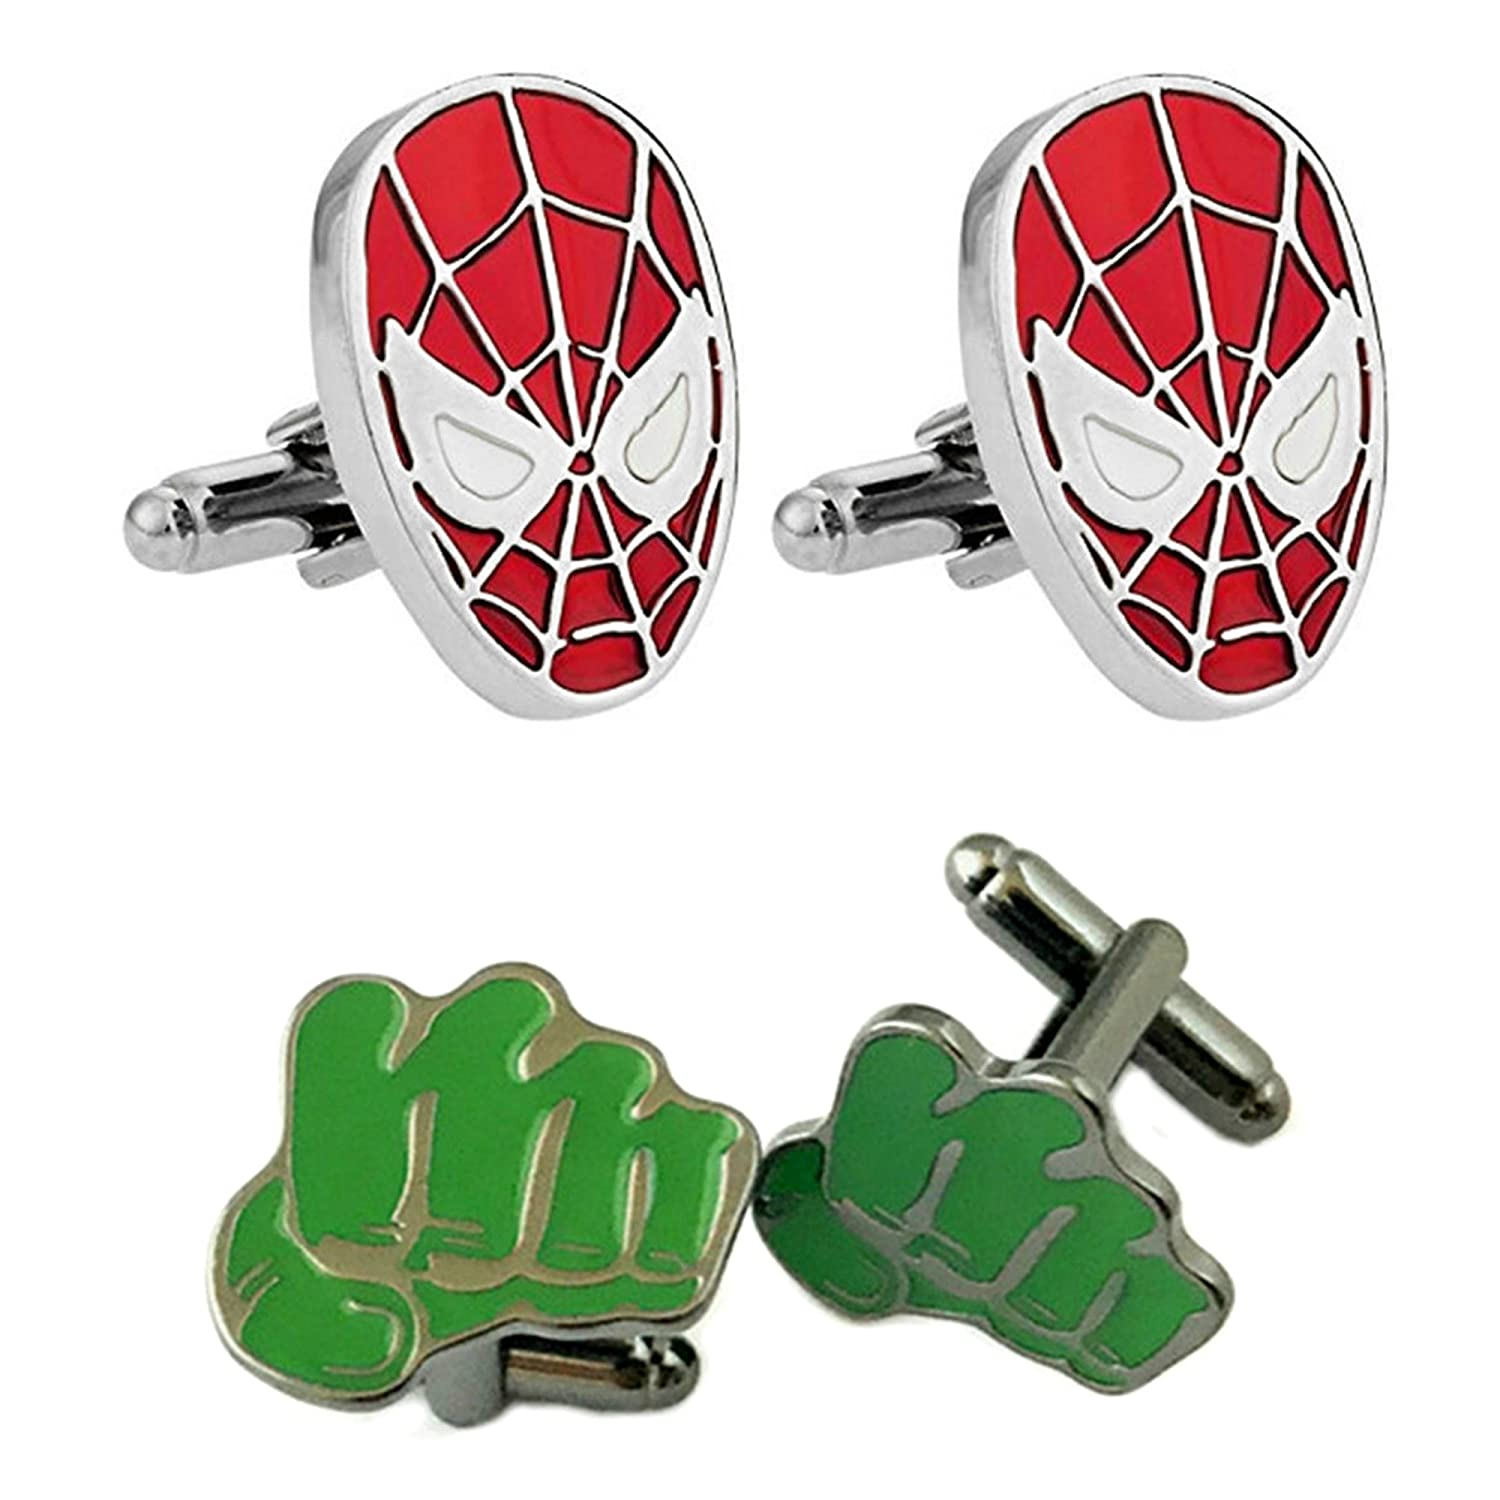 Outlander Gear Marvel Comics 2ペアスパイダーマン&ハルクスーパーヒーロー2018ムービーロゴ – Wedding Groom Groomsmen Mens Boys Cufflinks B07C8QJHVD